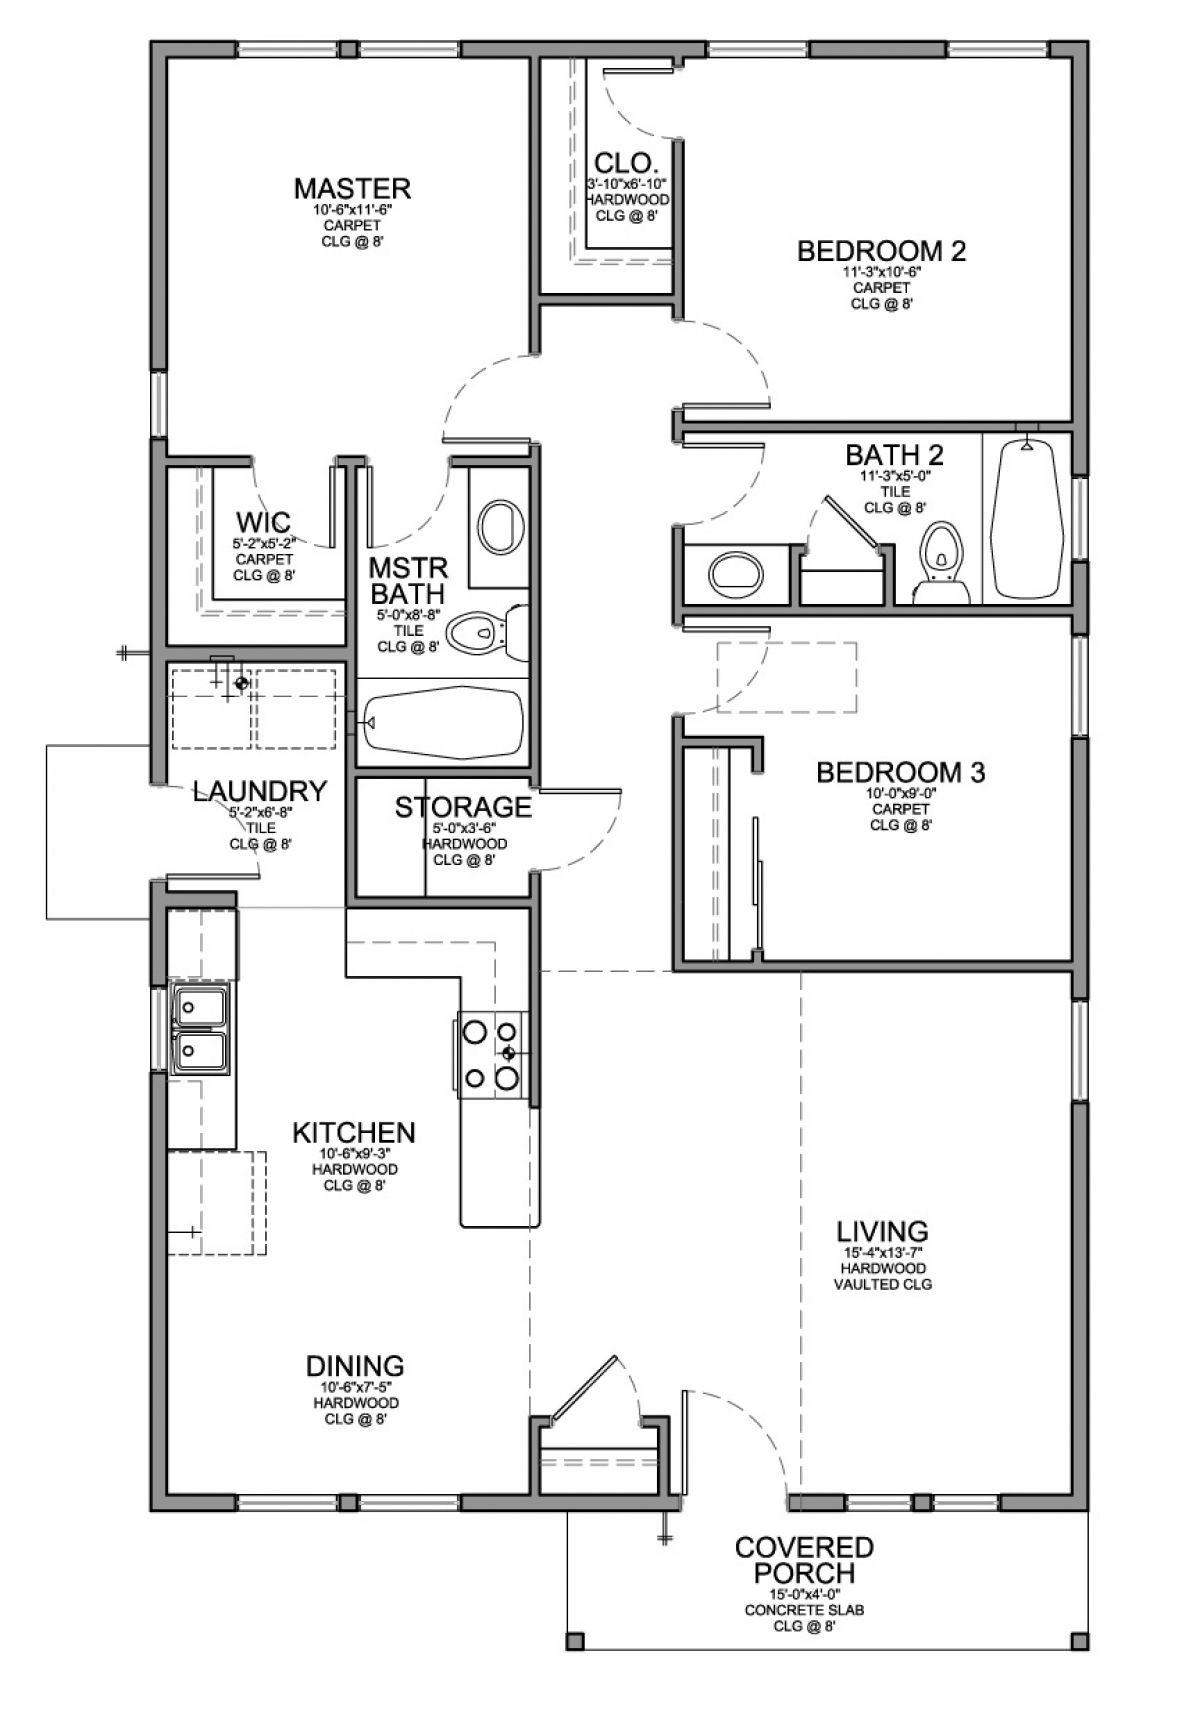 House Floor Plans and Cost to Build Beautiful Floor Plans and Cost Build Plan for Small House Tamilnadu